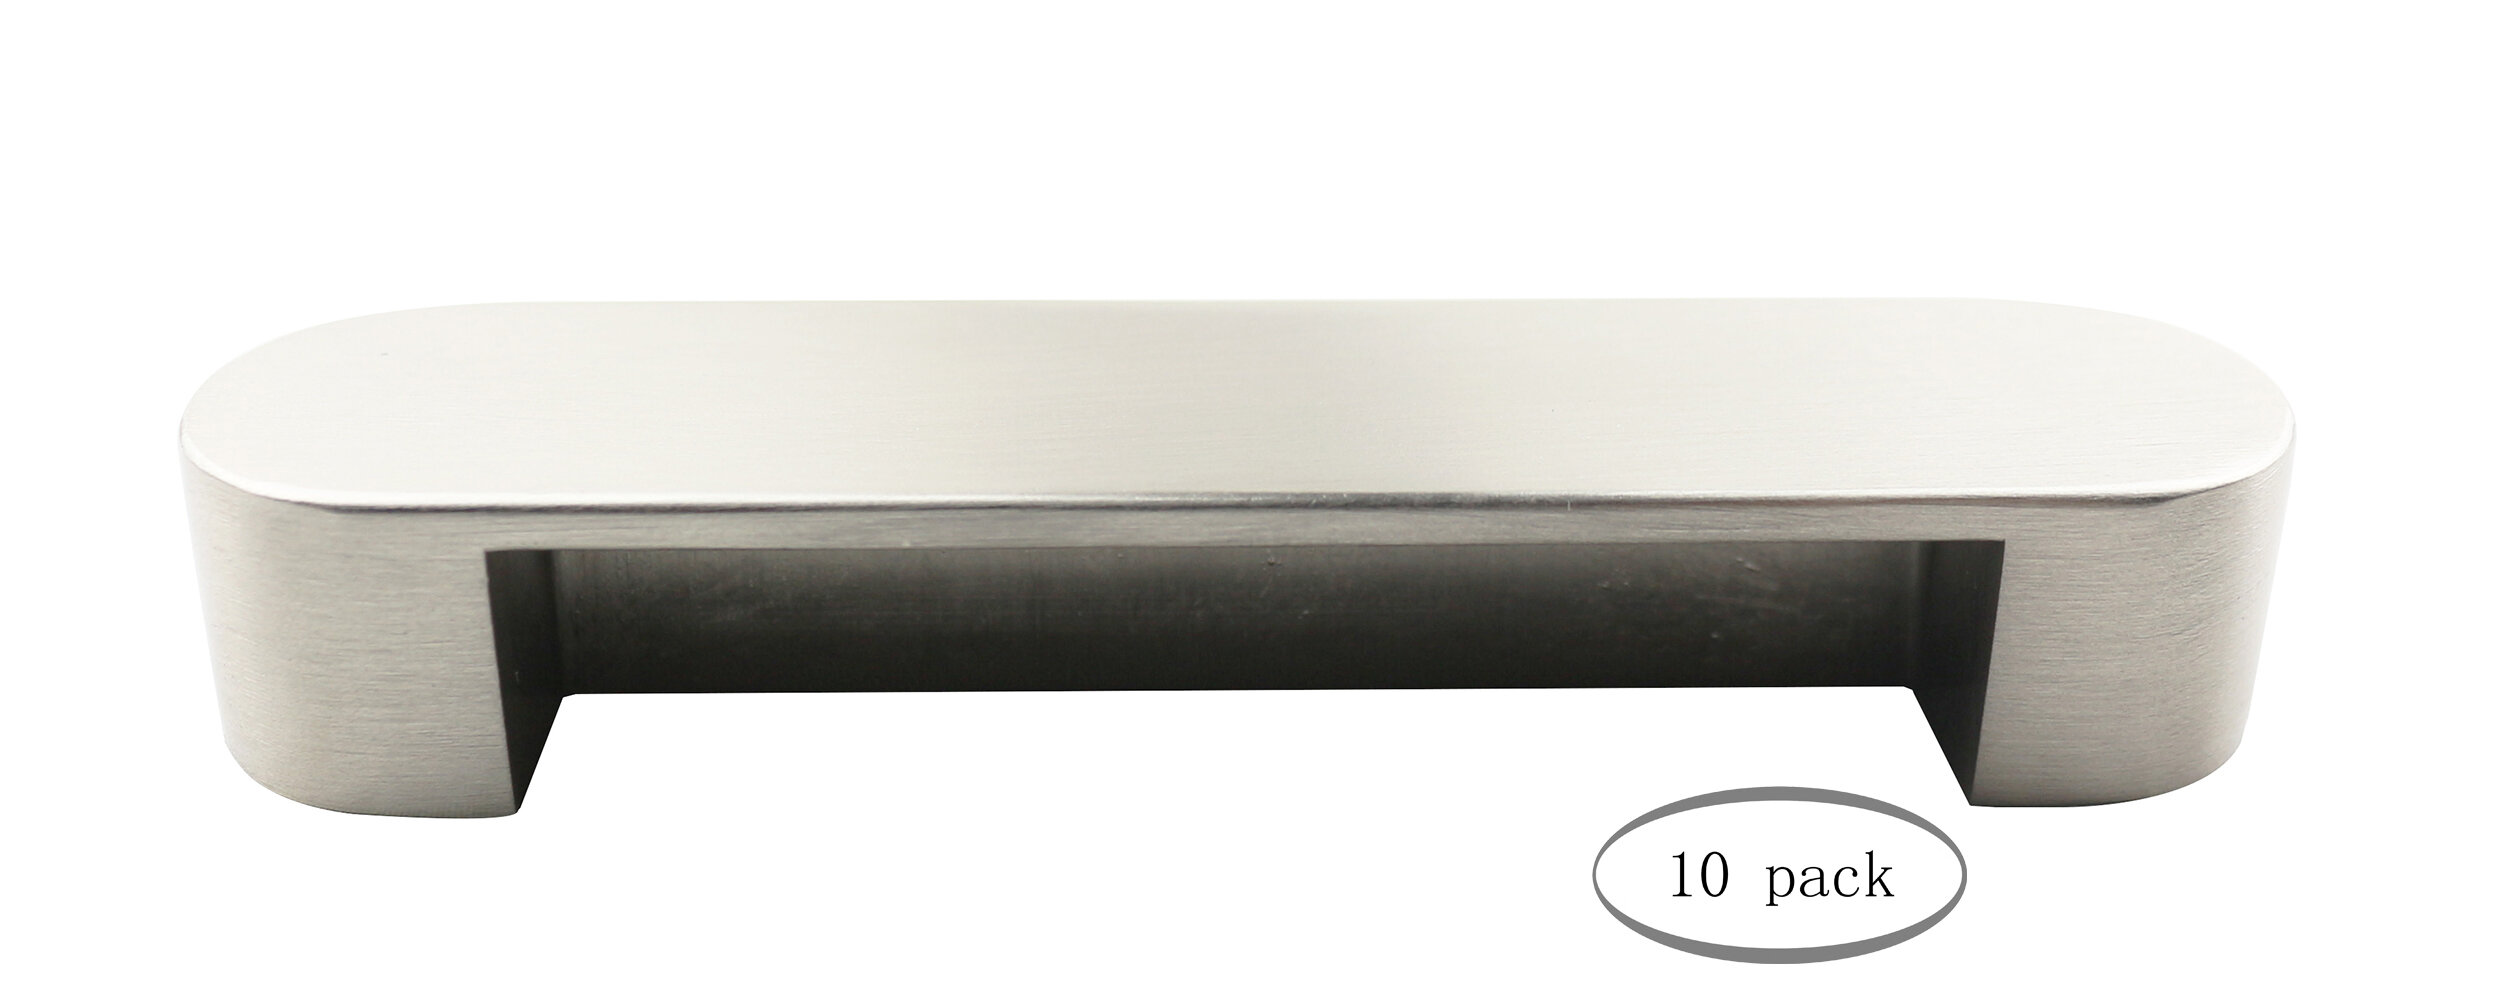 3 13 16 3 15 16 Inches 97mm 100mm Cabinet Drawer Pulls You Ll Love In 2021 Wayfair Ca